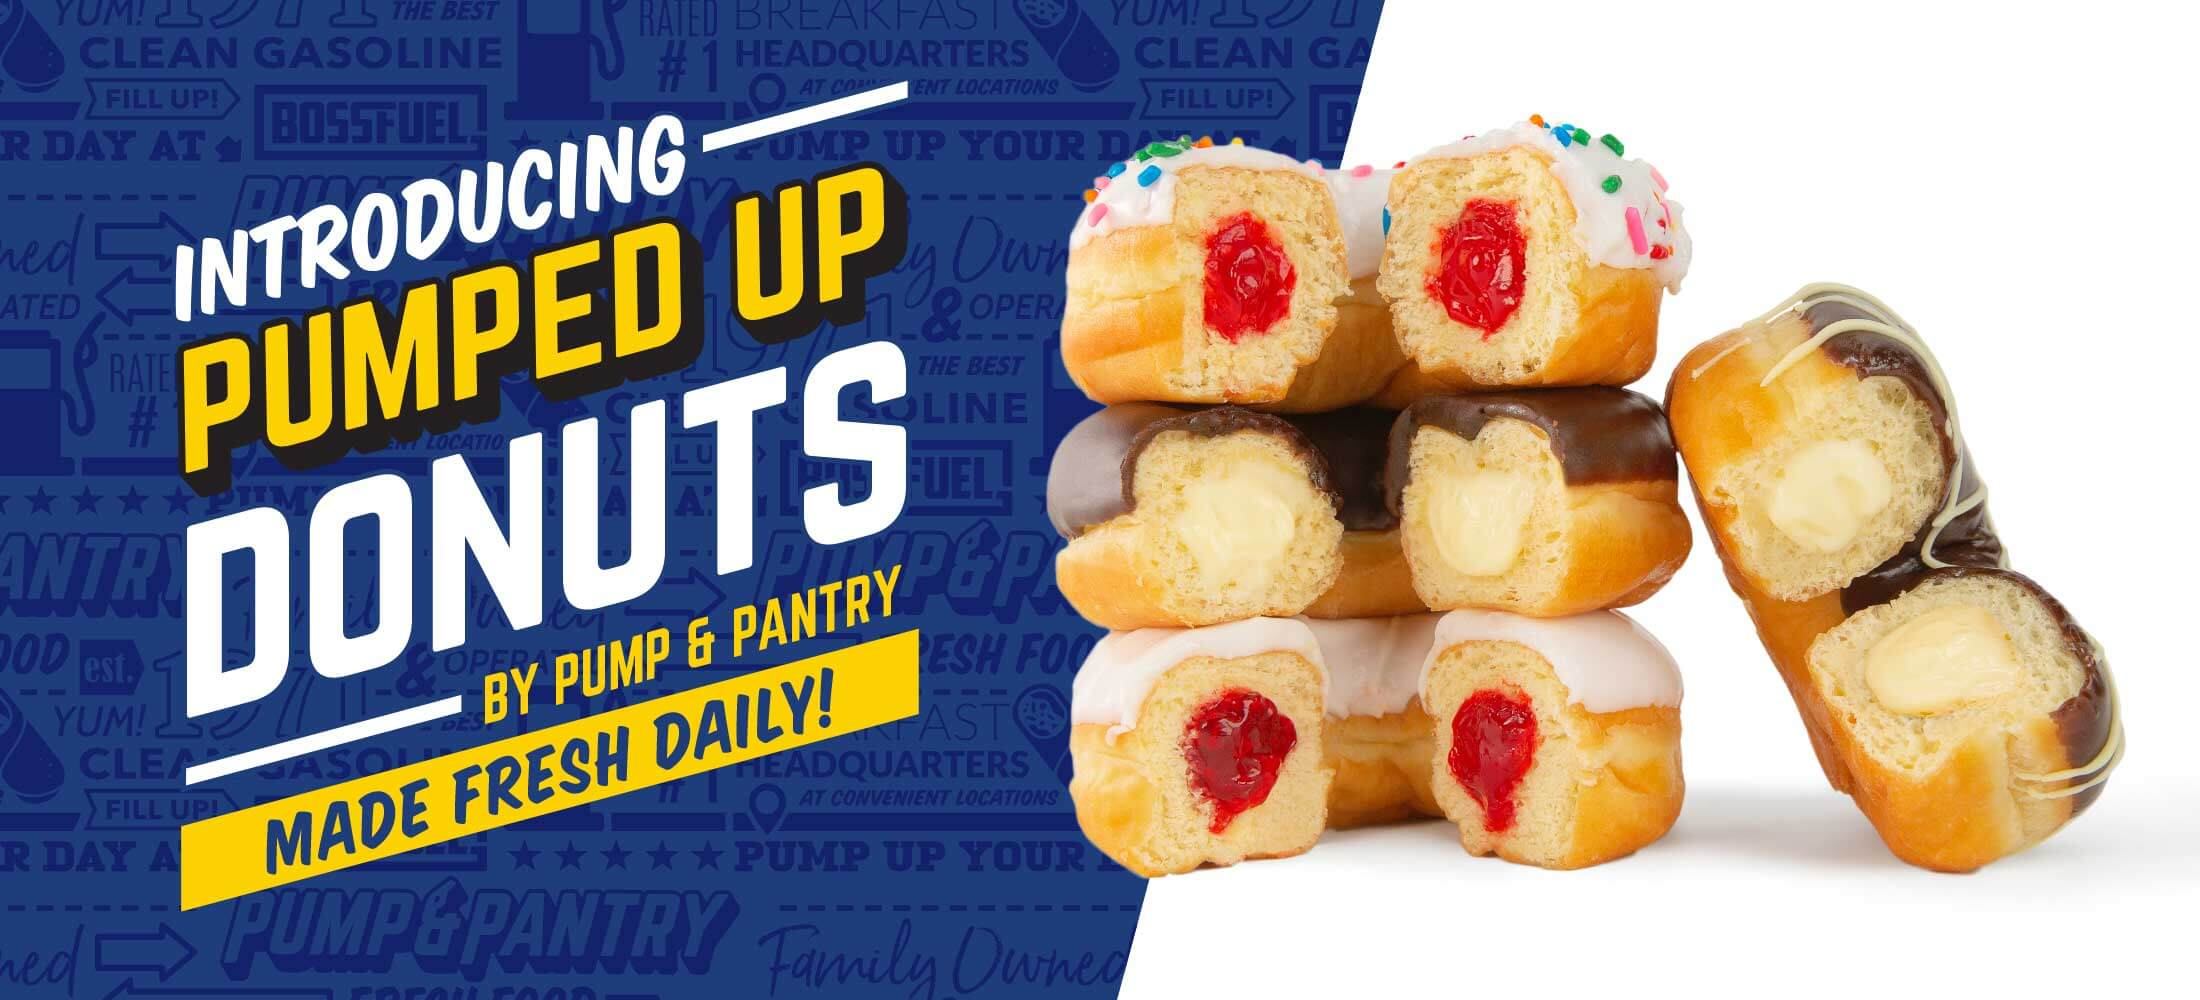 Pumped Up Donuts